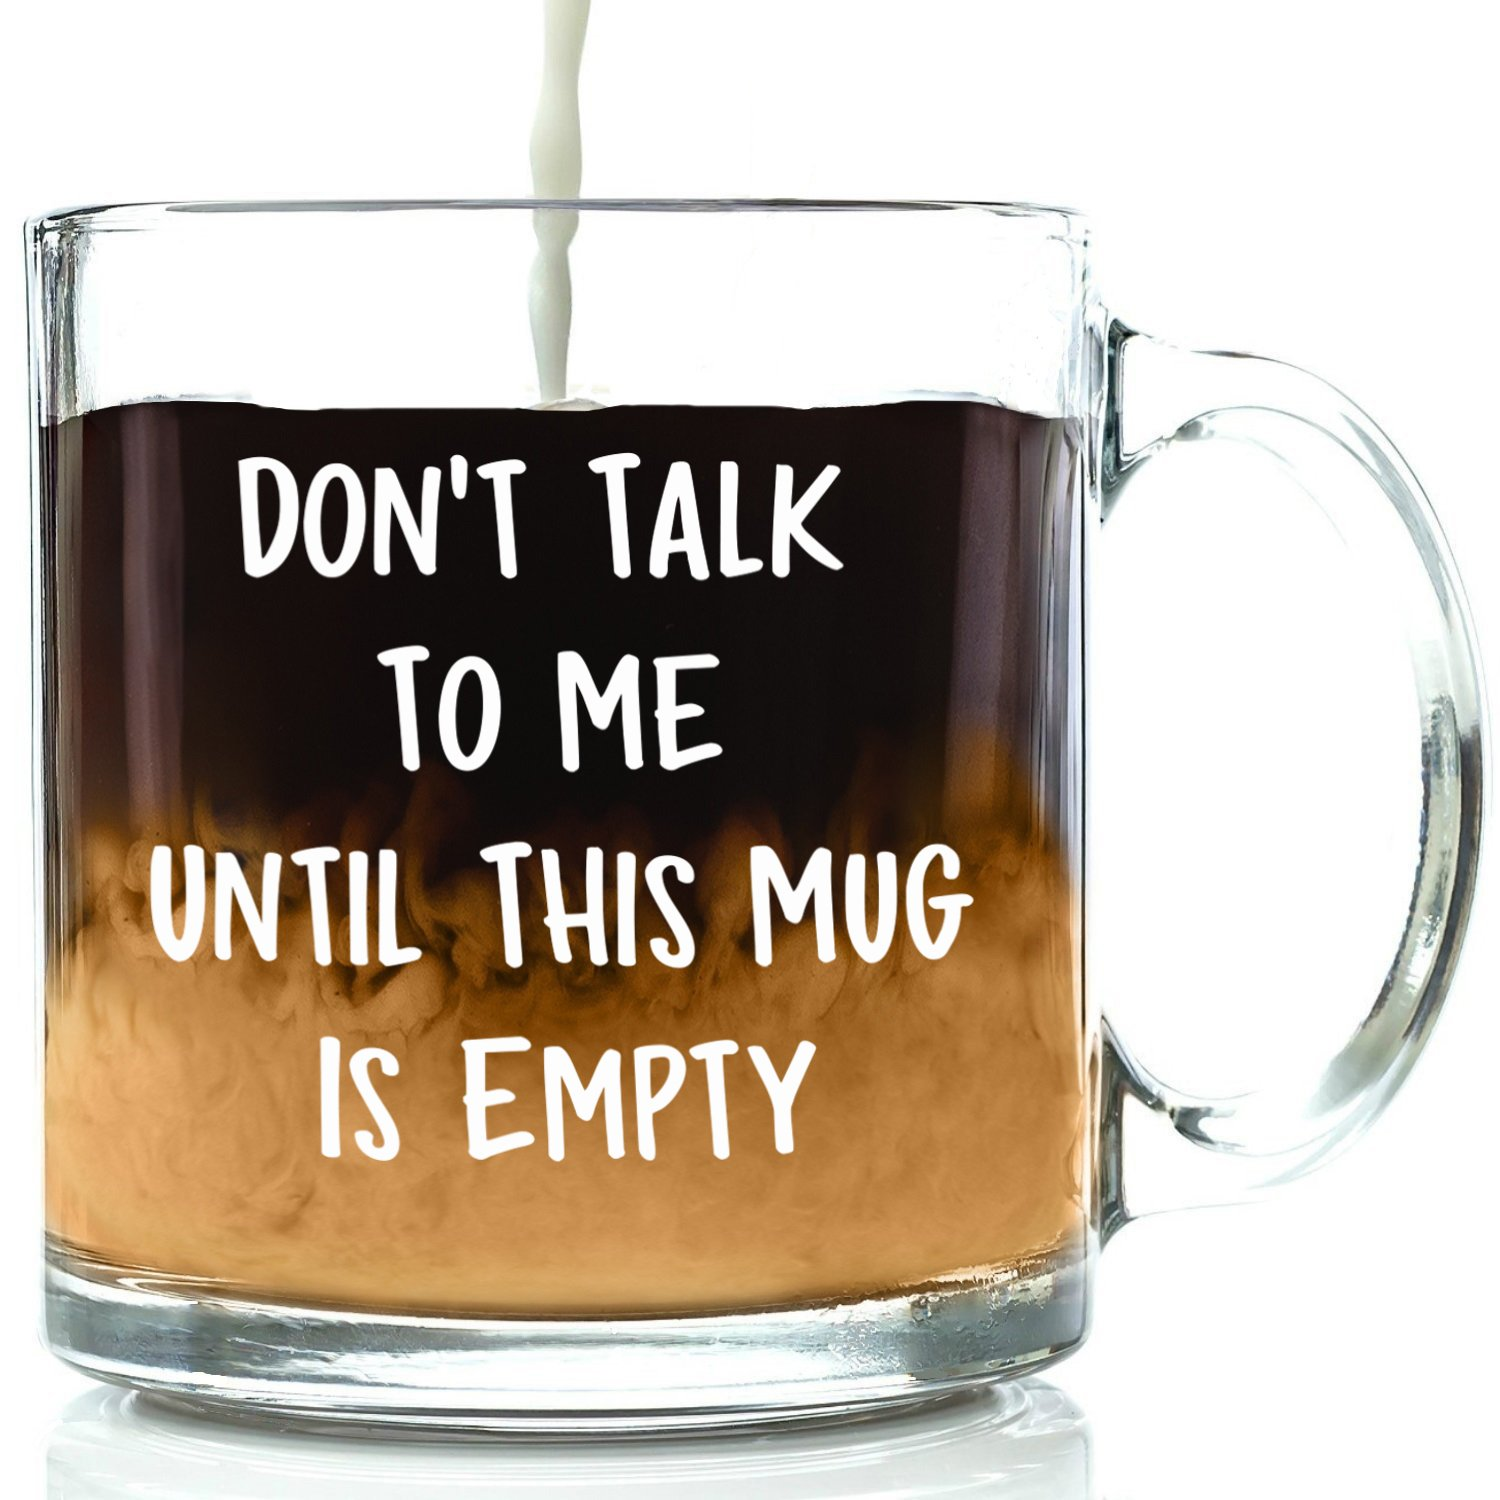 Don't Talk To Me Funny Glass Coffee Mug - Best Christmas Gift For Men & Women - Fun & Unique Office Cup - Novelty Birthday Idea For Friends, Mom, Dad, Husband, Wife, Boyfriend, Girlfriend, Coworkers